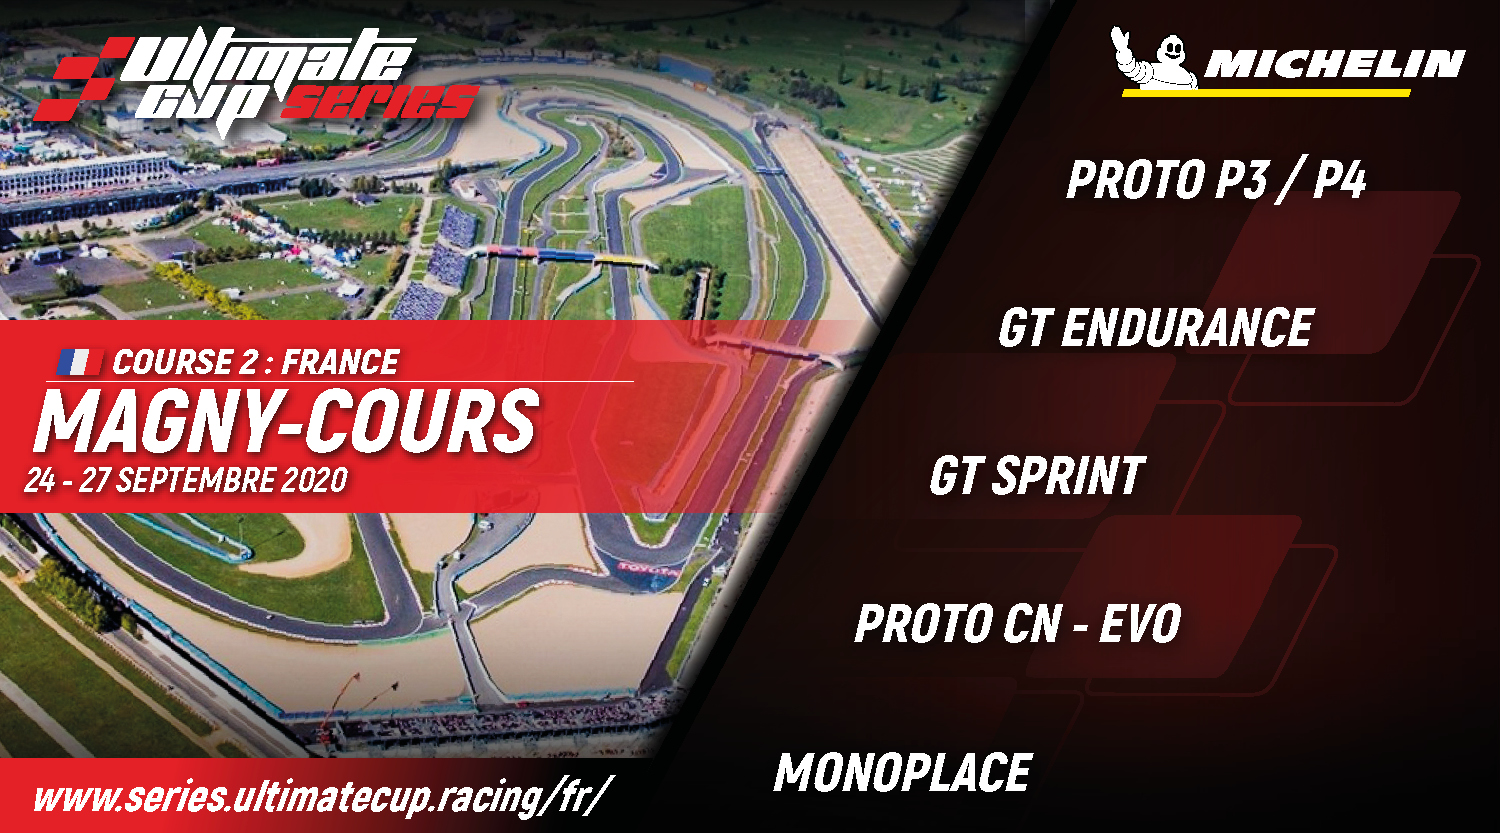 https://series.ultimatecup.racing/fr/circuits/magny-cours